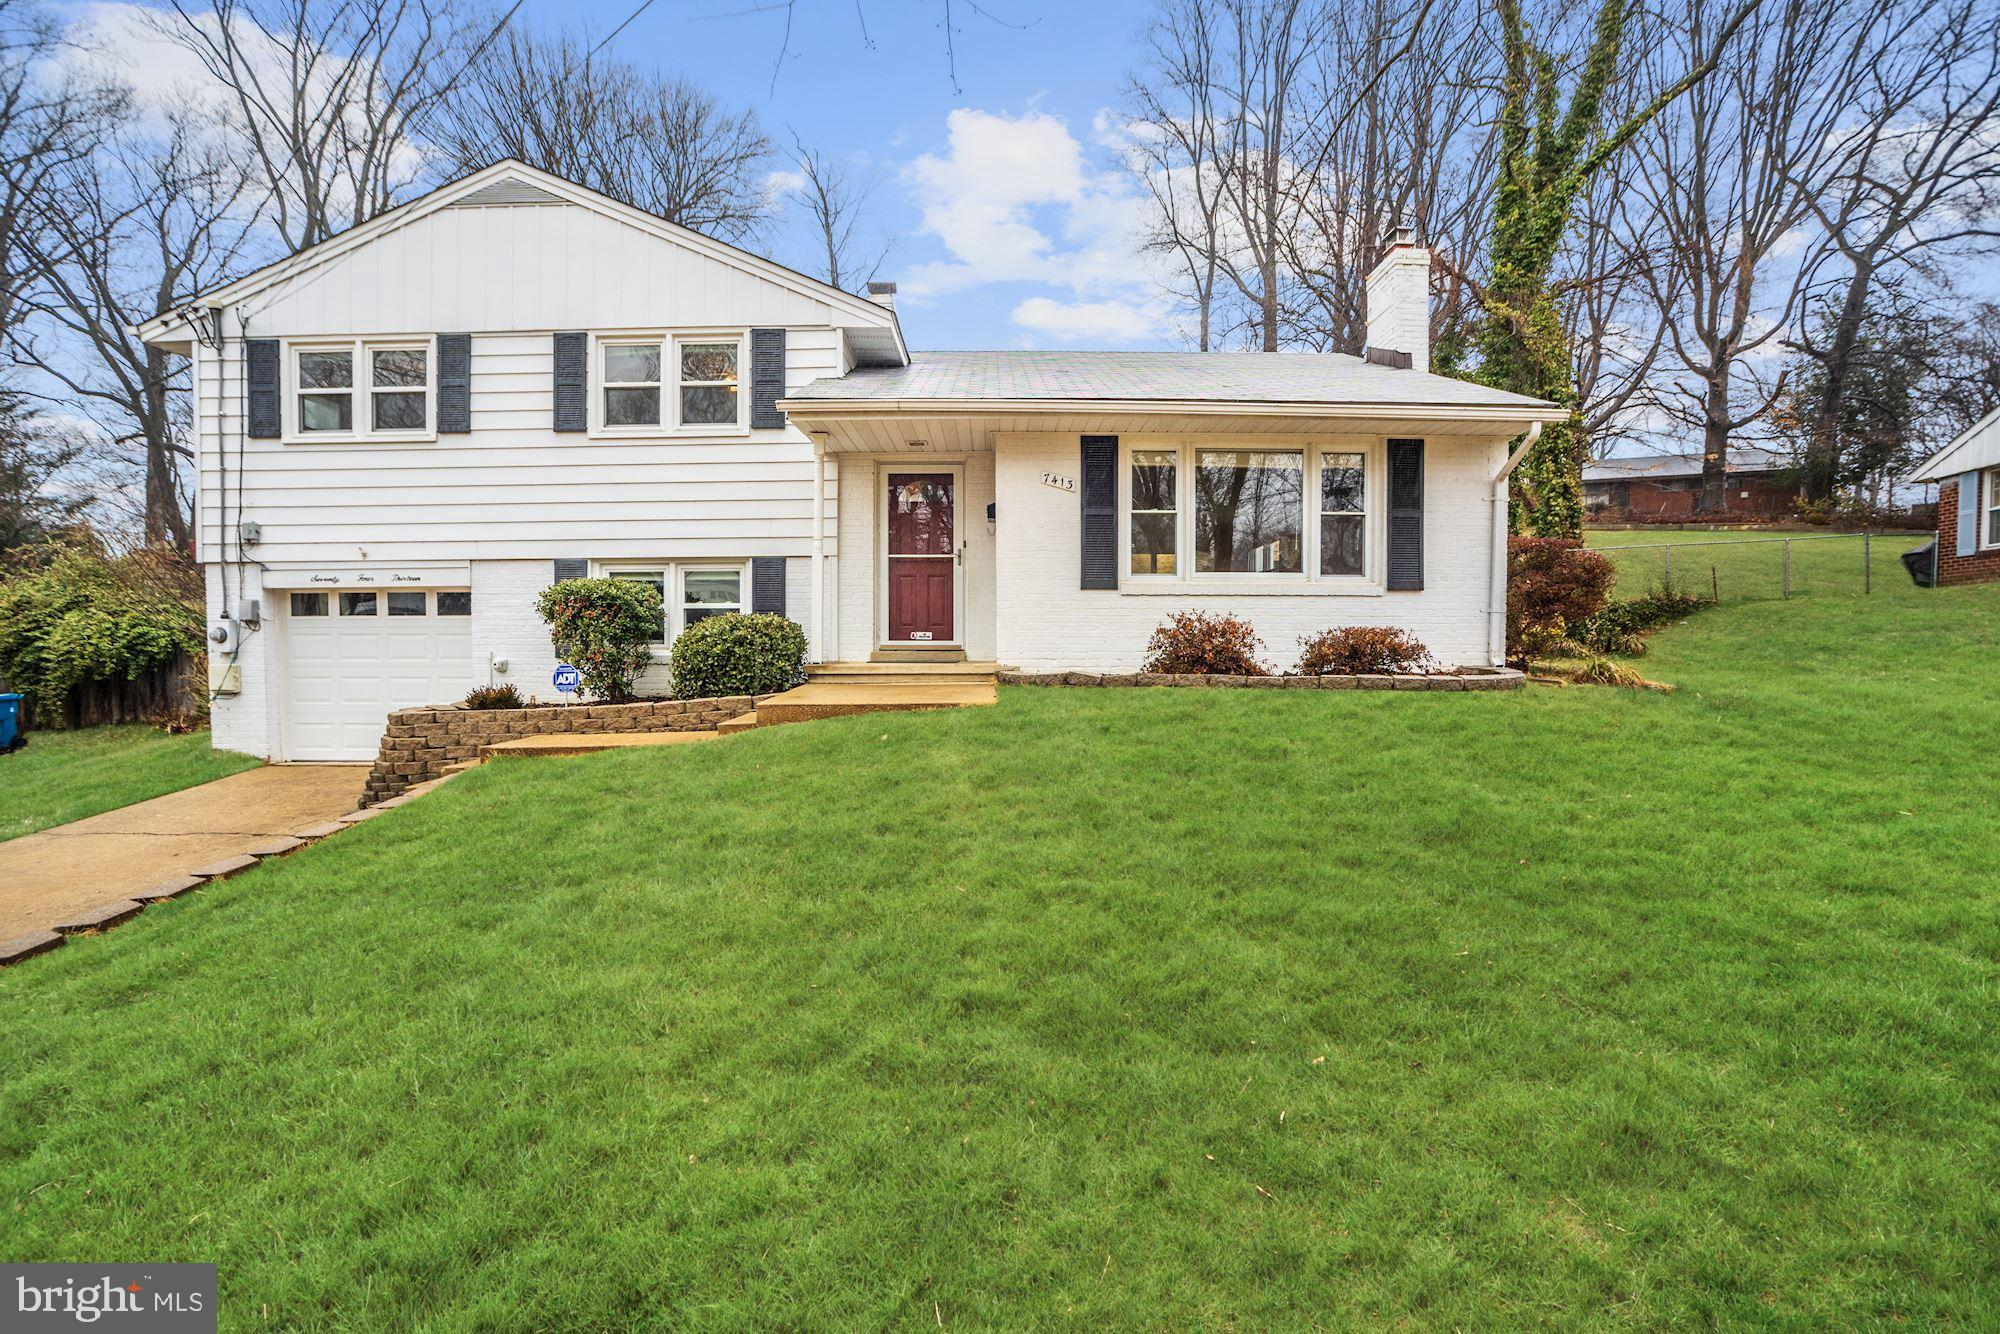 OFFER DEADLINE 3/7/2019 AT 9PM. Welcome home to this move-in ready split level detached home in the heart of Springfield.  This home boasts a beautiful new kitchen and bathrooms. The roofing and windows have been replaced in the last few years. Enjoy the outdoors with the fantastic new hardscape patio and fenced-in yard.  New garage door and opener in place.   Great commuting location next to the Mixing Bowl with easy access to Interstate 95, the Capital Beltway (495) and 395.  Easy access to Lake Accotink Park and amazing shopping/dining options very nearby.